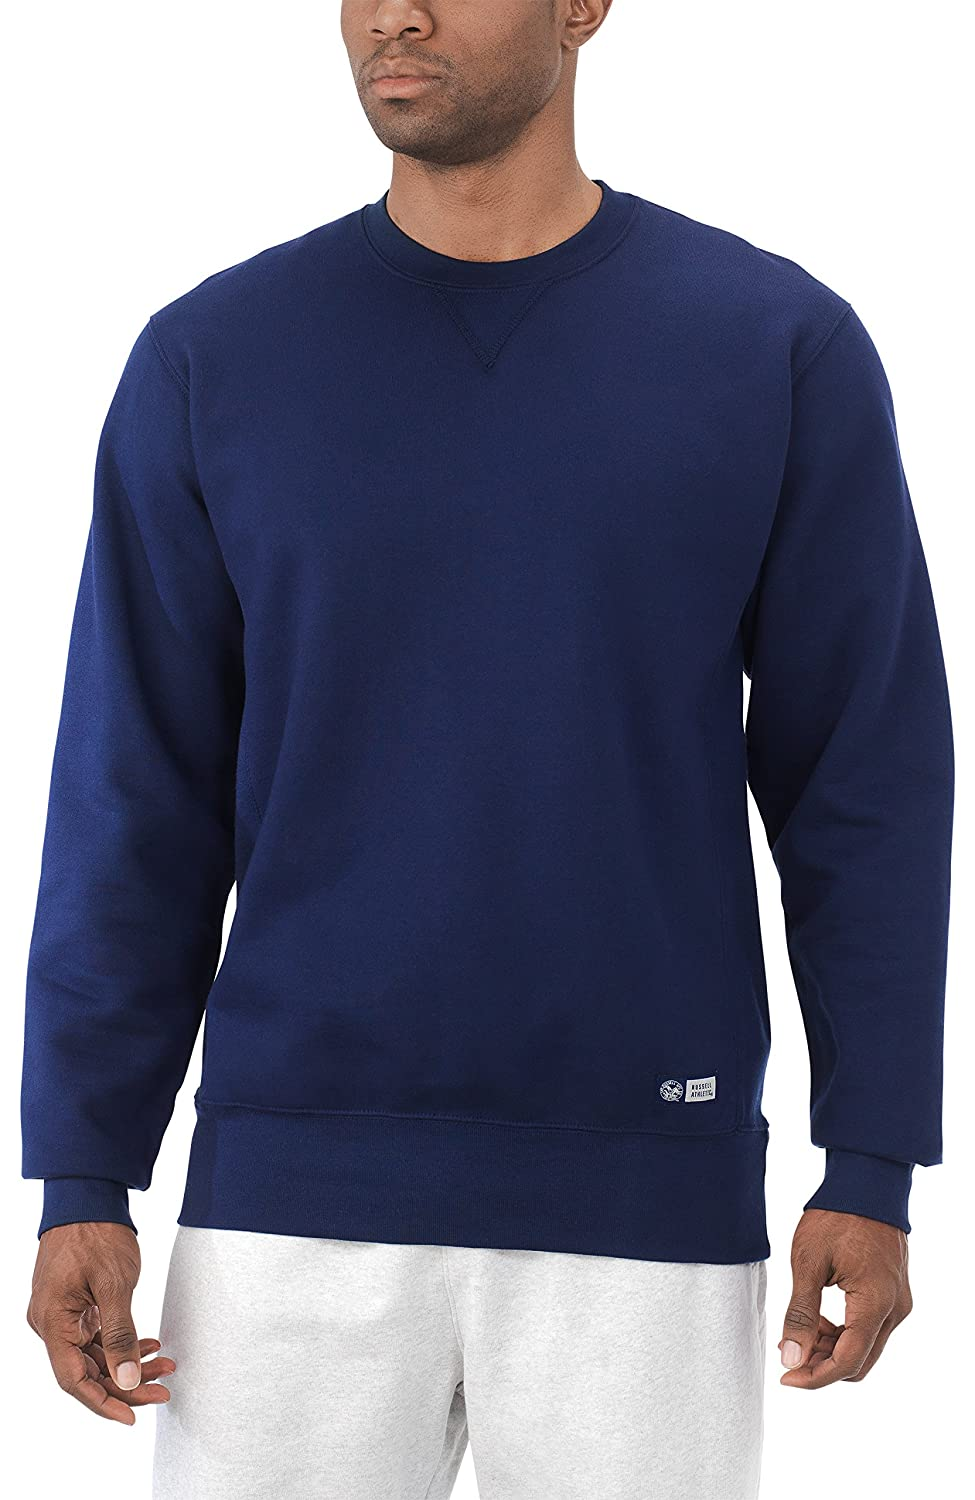 Russell Athletic Mens Pro10 Fleece Crew 10CRJM0